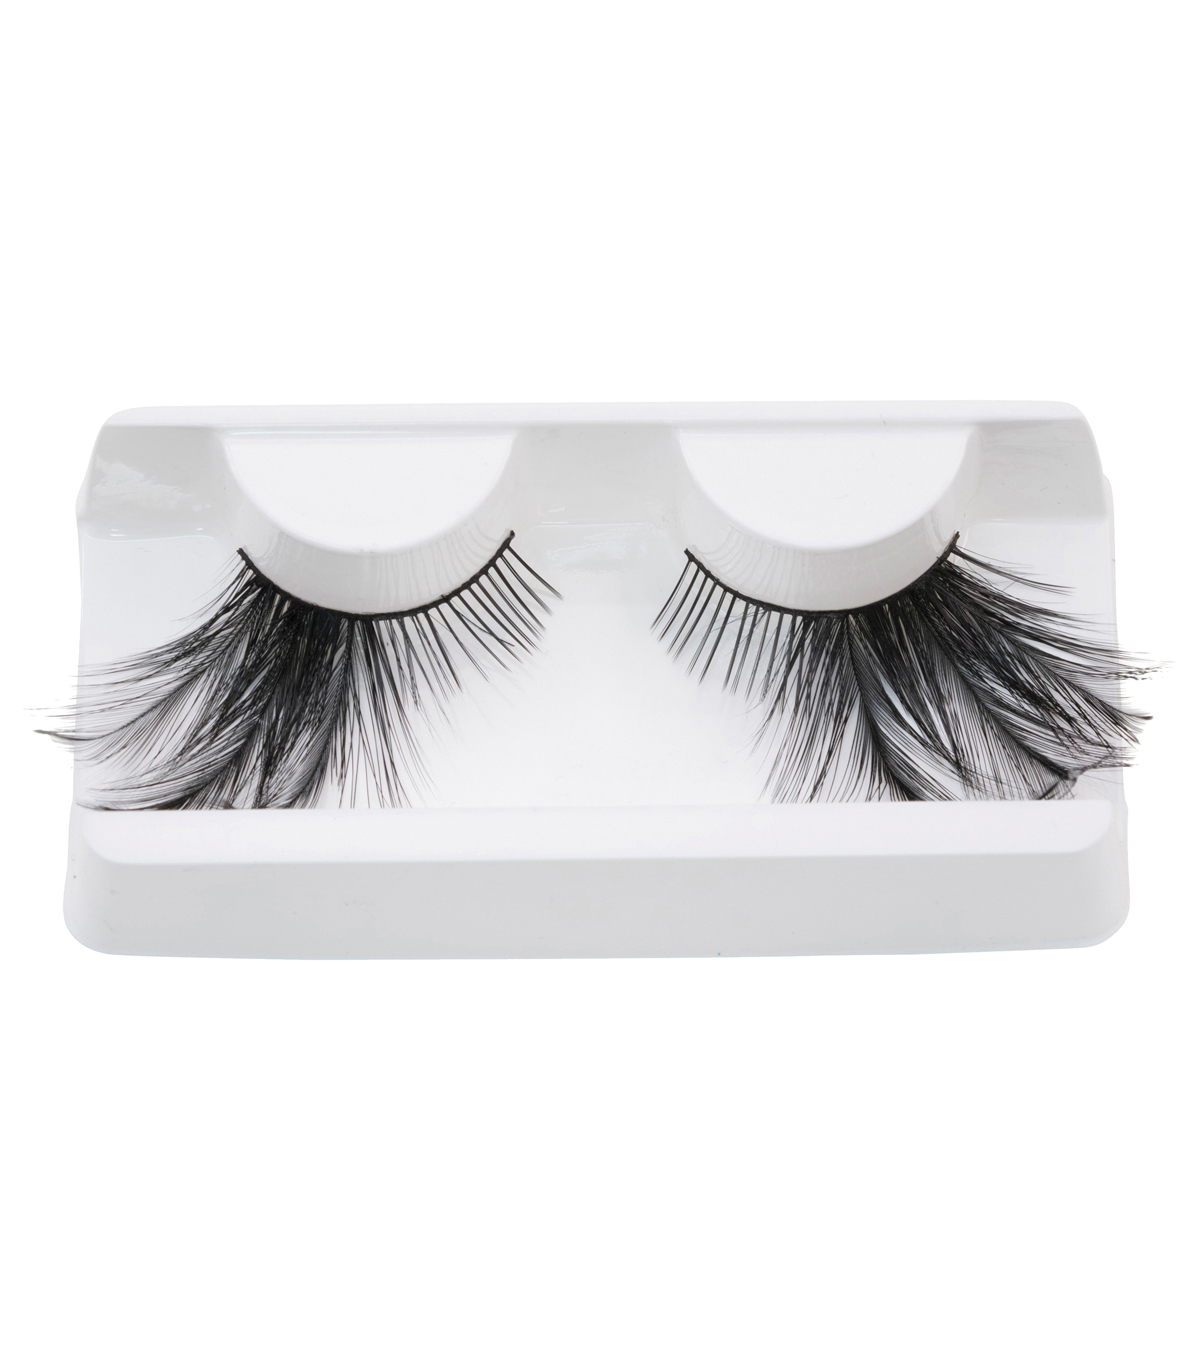 Makers Halloween Eyelashes With Outer Feathers Glue Joann